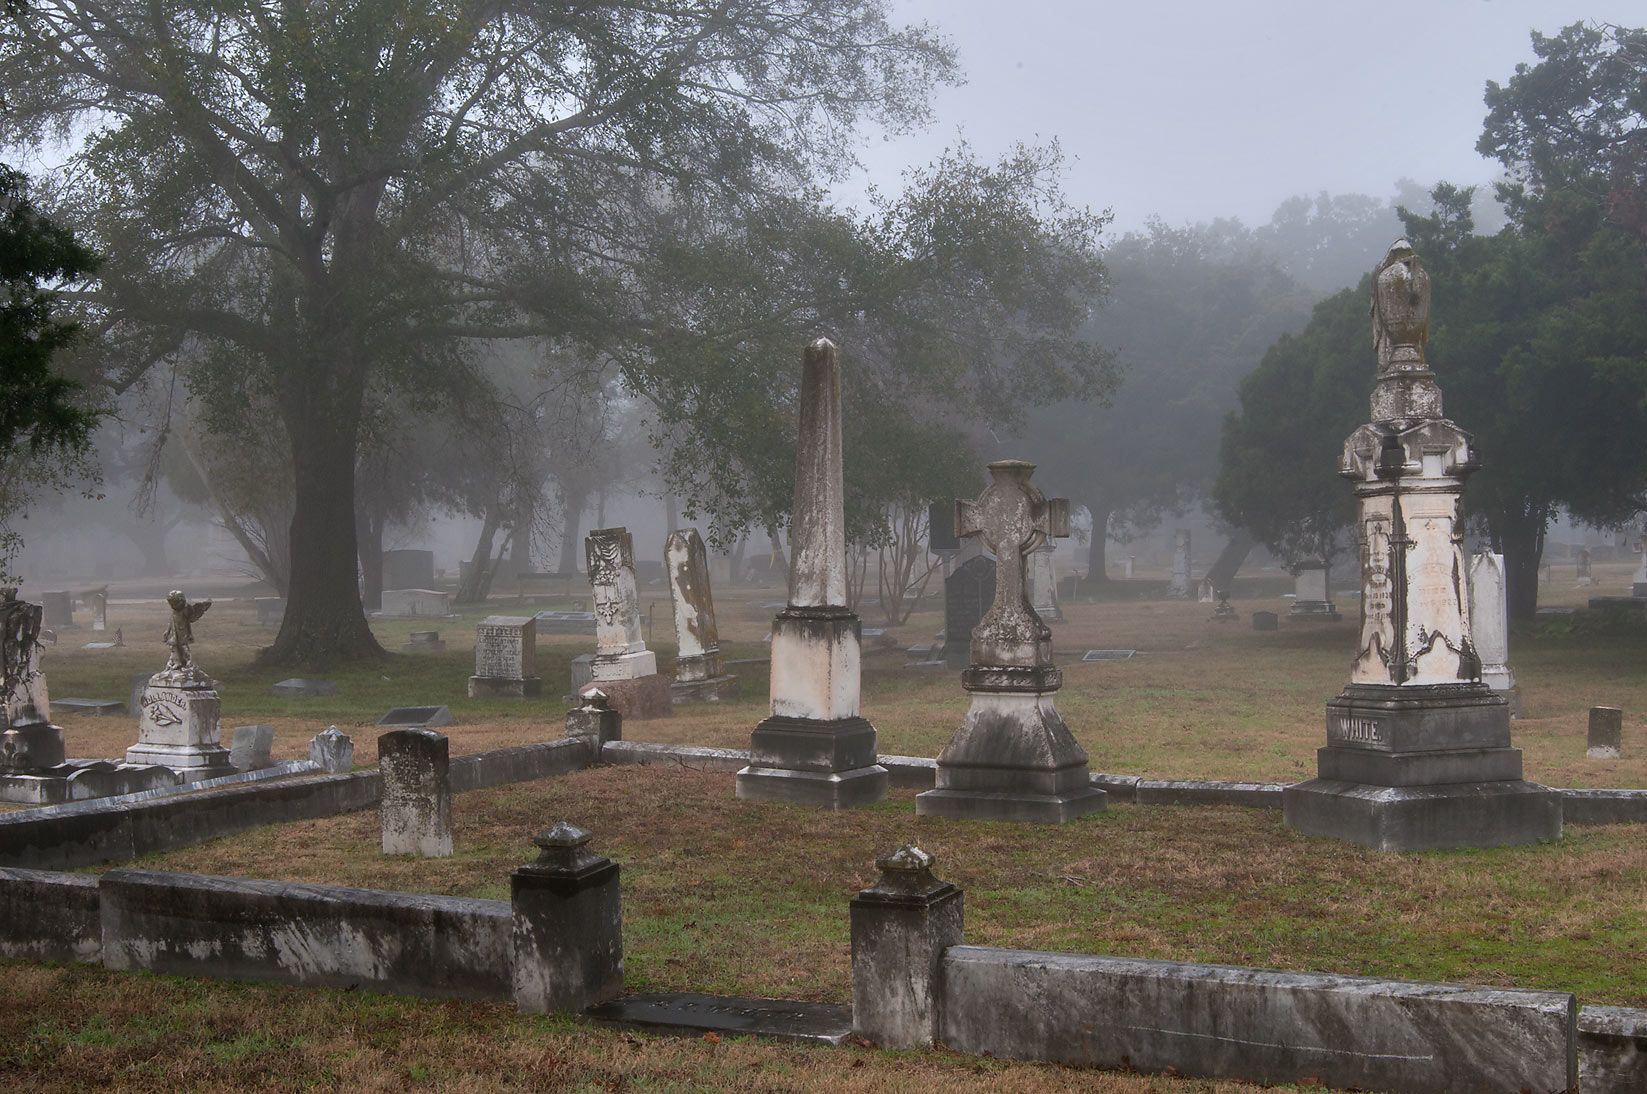 Family tomb in City Cemetery in fog. Bryan, Texas